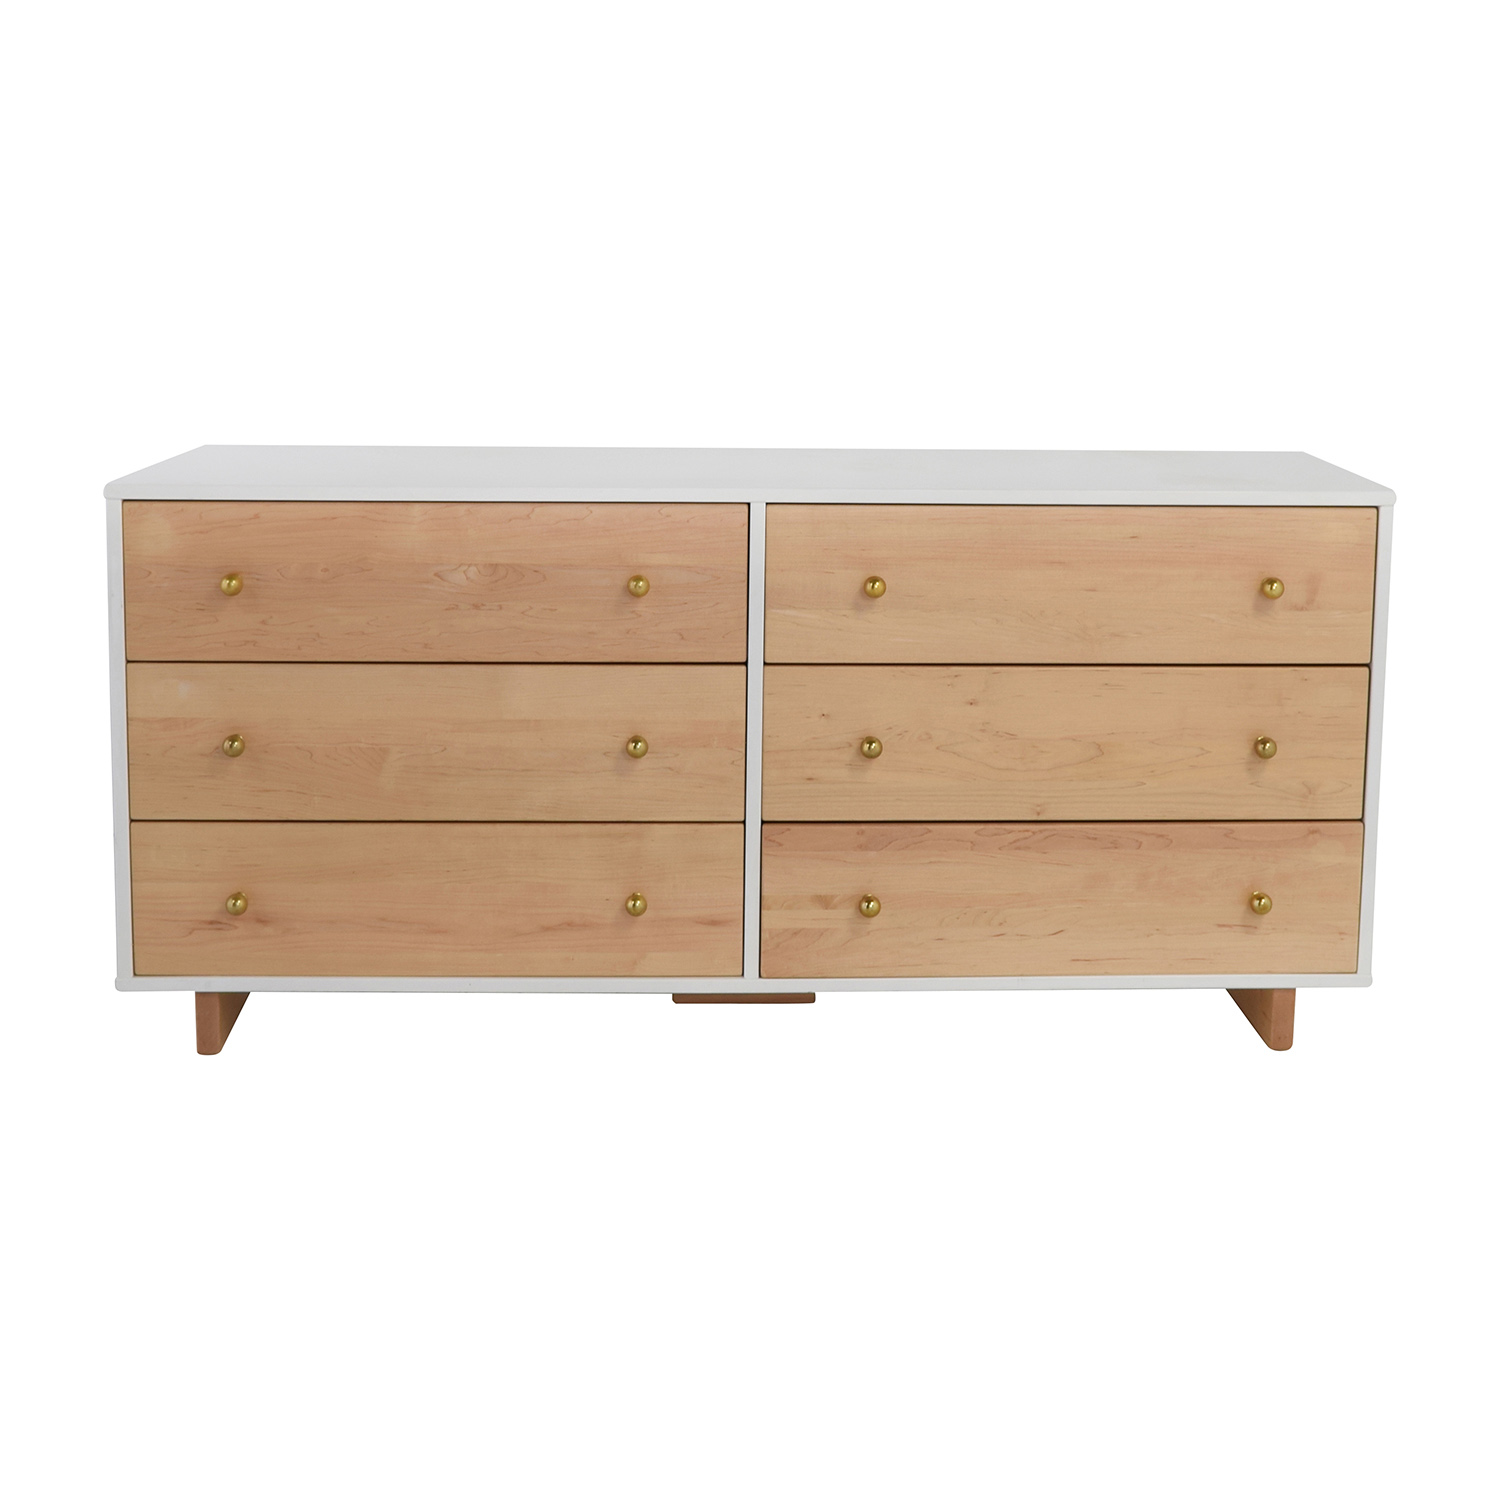 buy Room & Board Room & Board Moda Six Drawer Dresser online